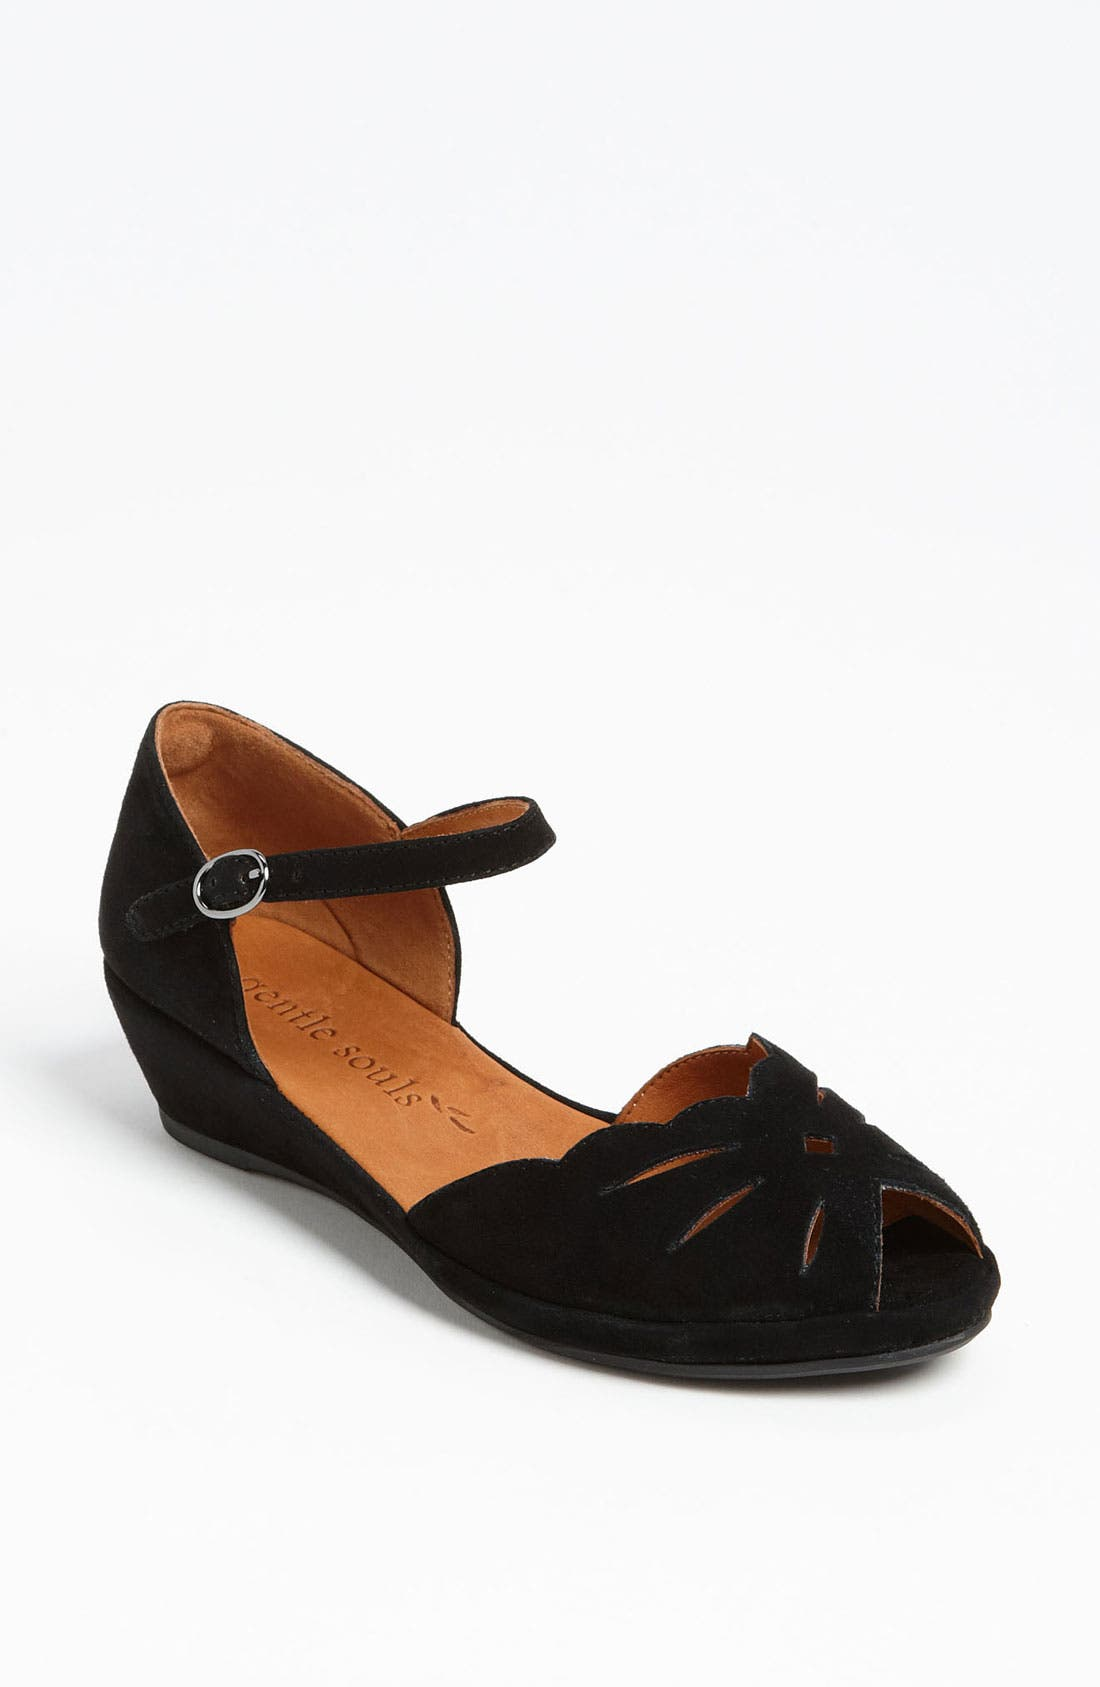 By Kenneth Cole 'Lily Moon' Sandal in Black